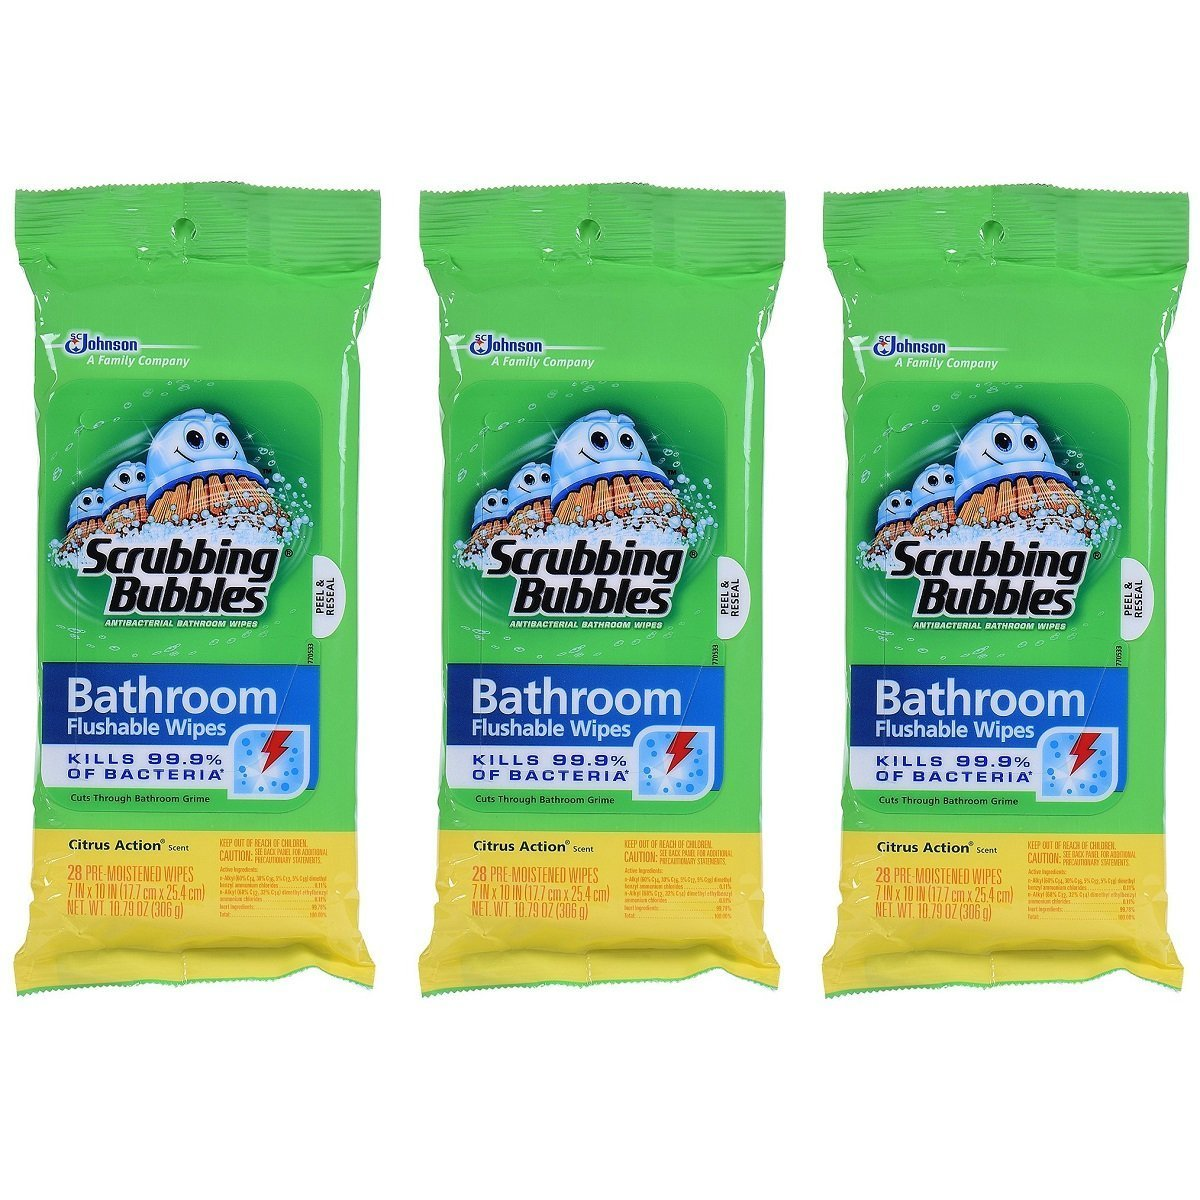 Scrubbing Bubbles Antibacterial Bathroom Flushable Wipes, 28 Count (Pack of 3)...